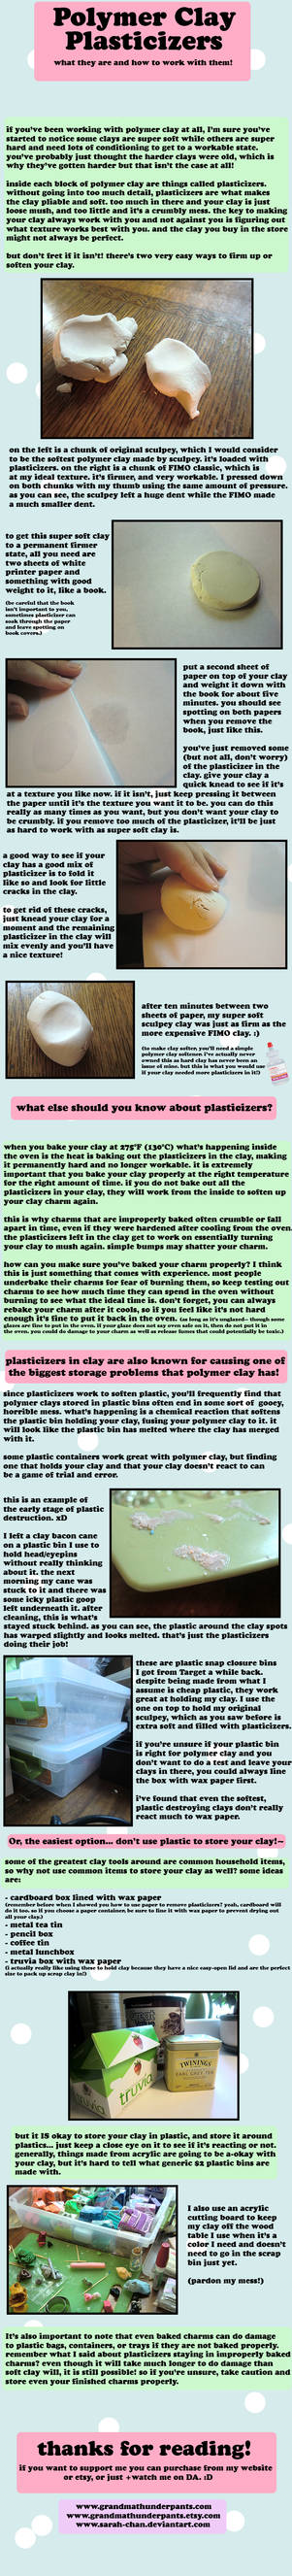 Polymer Clay Plasticizer Quick Guide